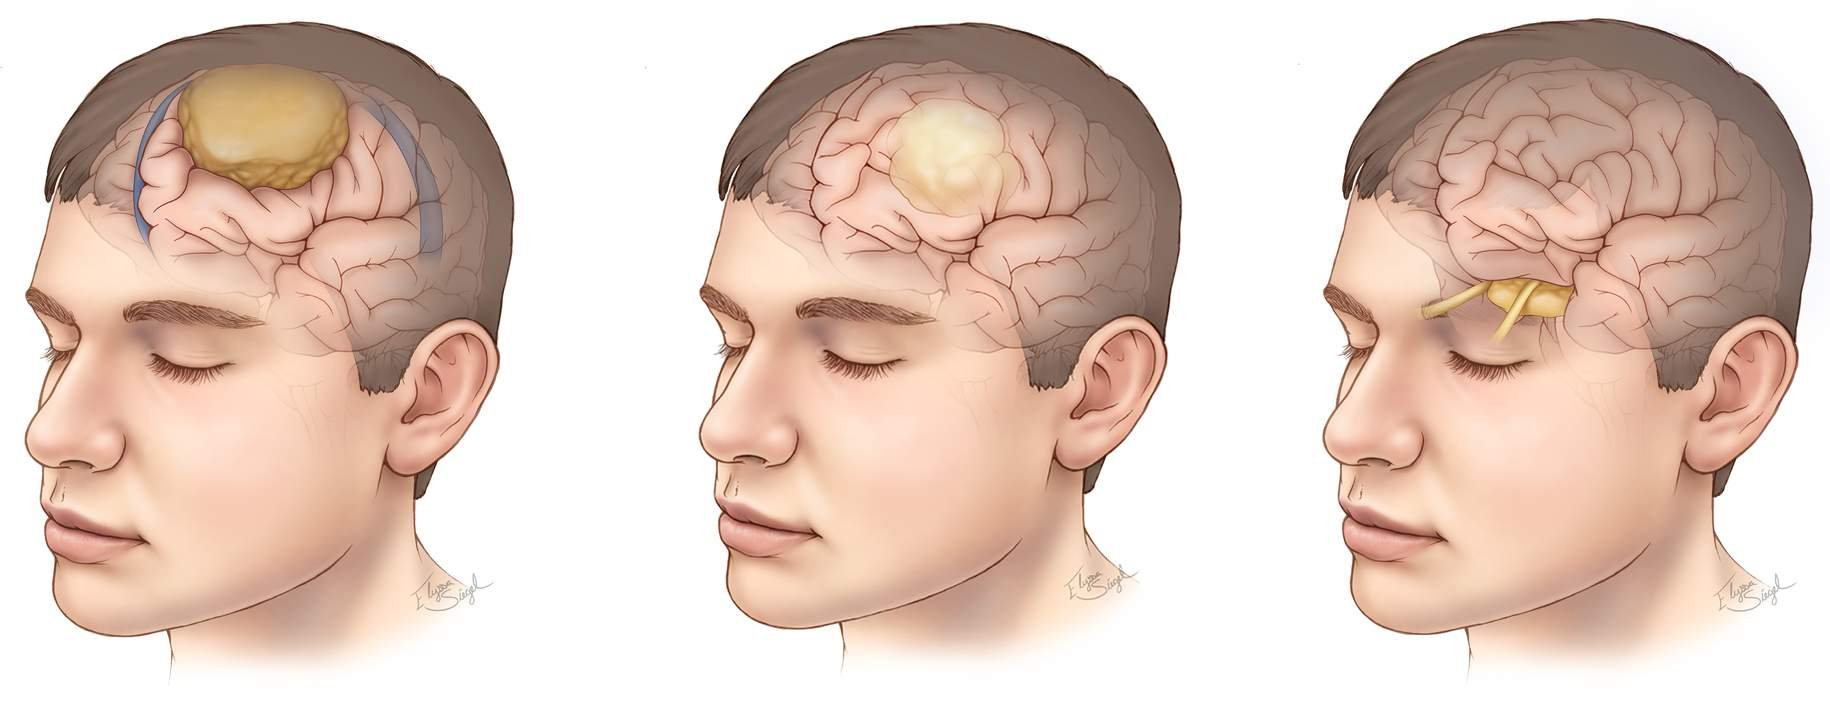 Figure 1. Different types of brain tumors. Meningioma (left), glioma (center), and pituitary tumor (right) are among the most common brain tumor types.